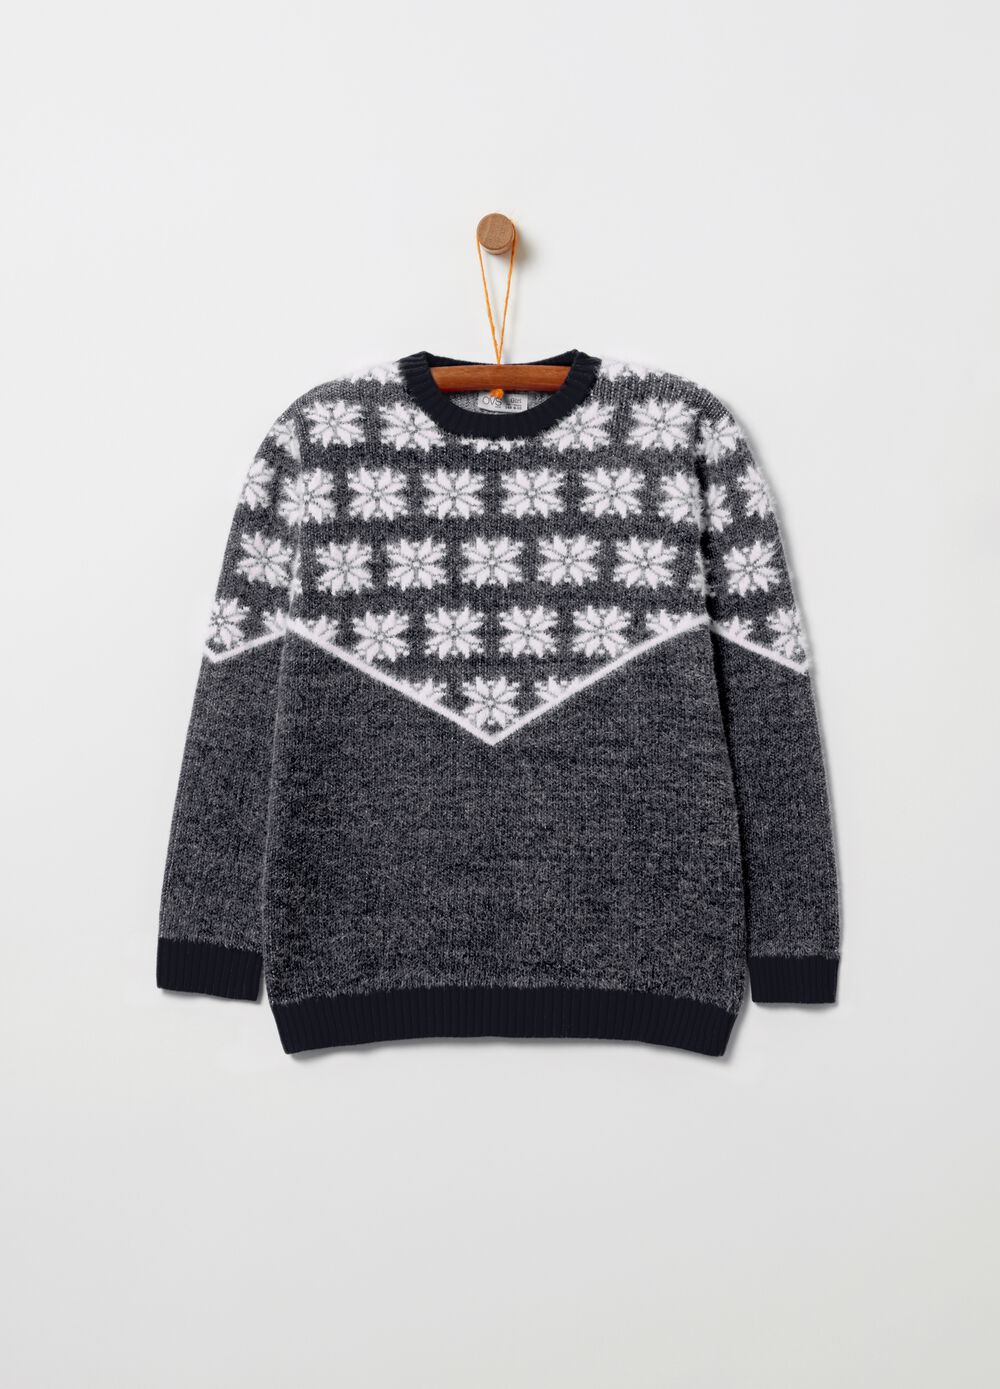 Christmas jumper with snowflakes pattern